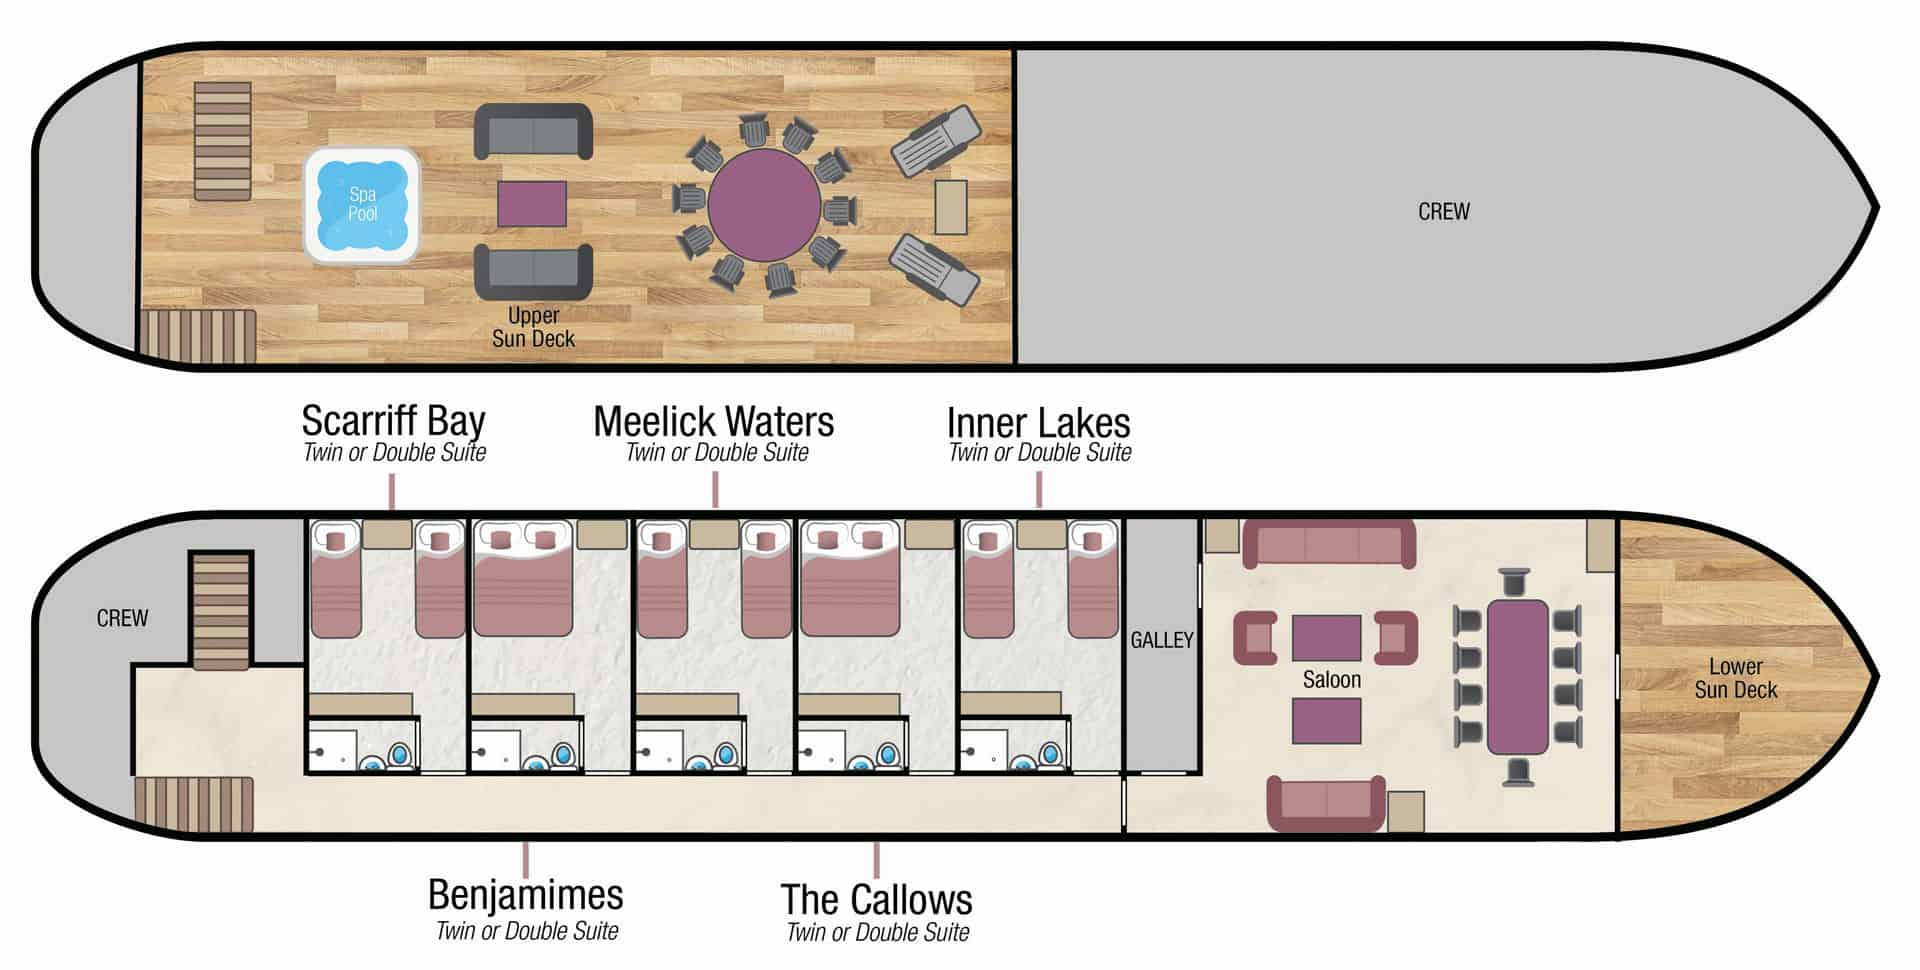 Deck plan of Shannon Princess barge, with 2 passenger decks including 4 cabins, dining table, saloon & sun deck with hot tub.